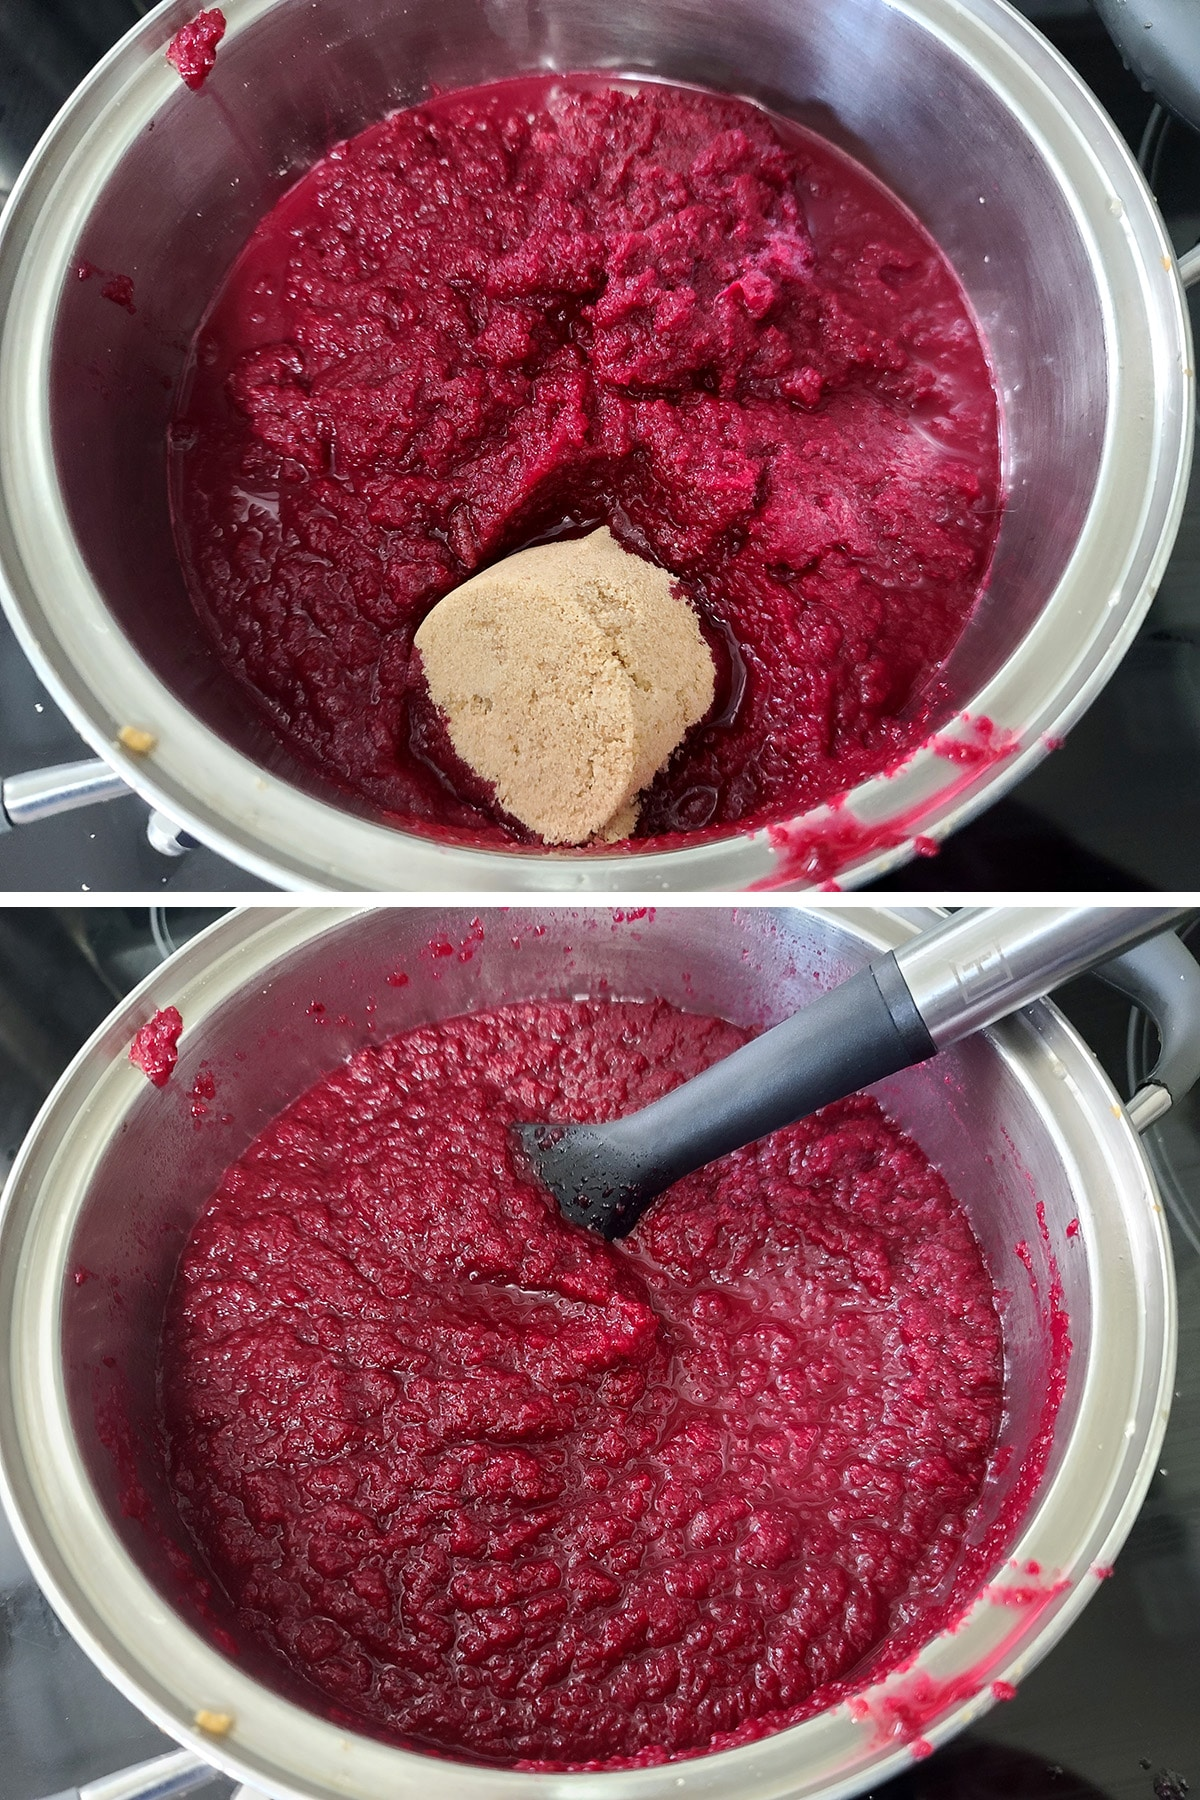 Brown sugar is added to the pot of ketchup and stirred in.